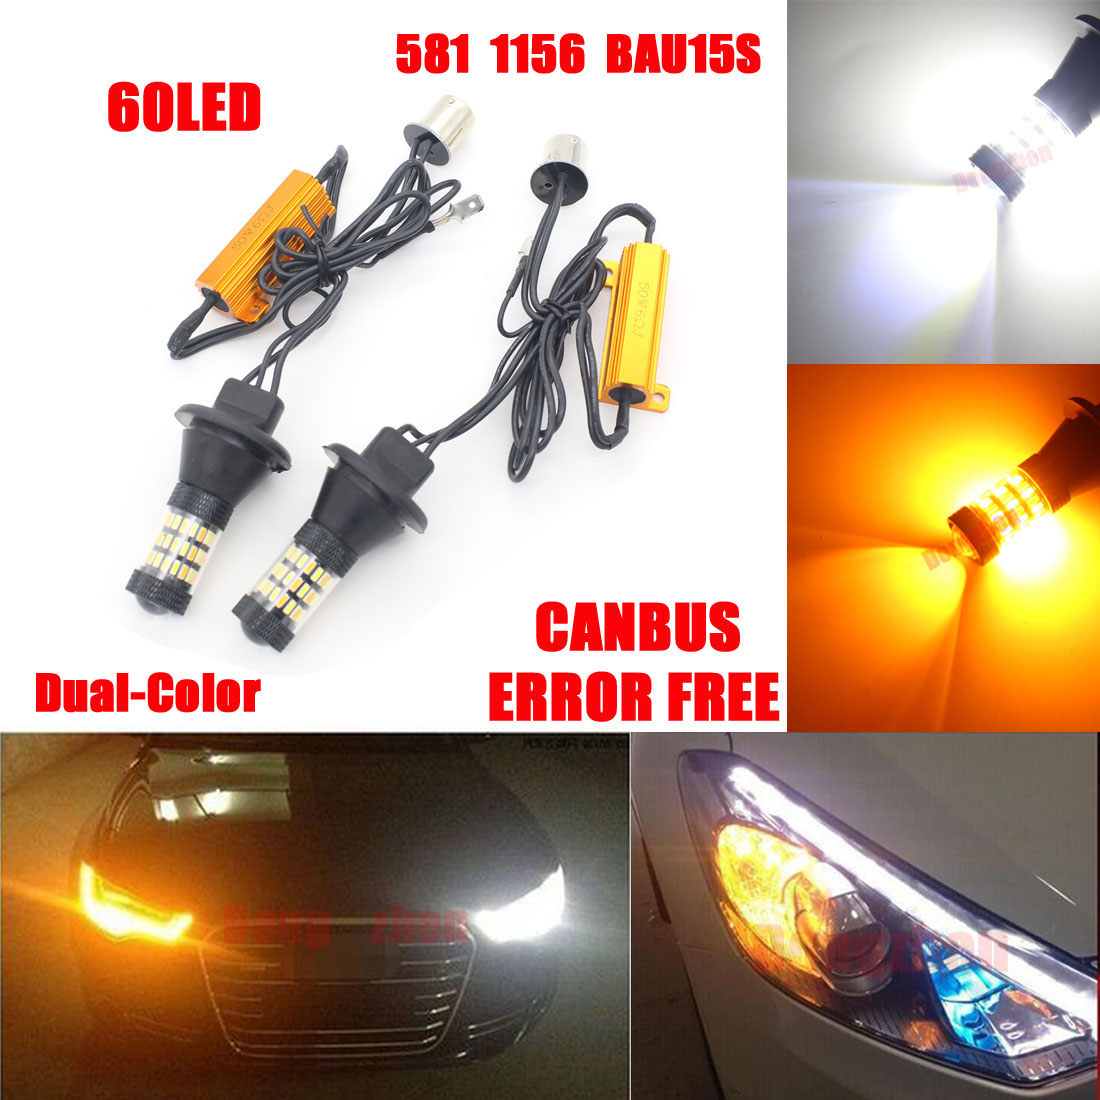 Dongzhen Headlight Daytime Running Light DRL 1156 BAU15S Car 60 LED Bulbs Fog Lamp Switchback Led Turn Signal Light Kit 2pcs 2pcs bau15s py21w cob car led daytime running light turn signal light yellow amber bulb backup light